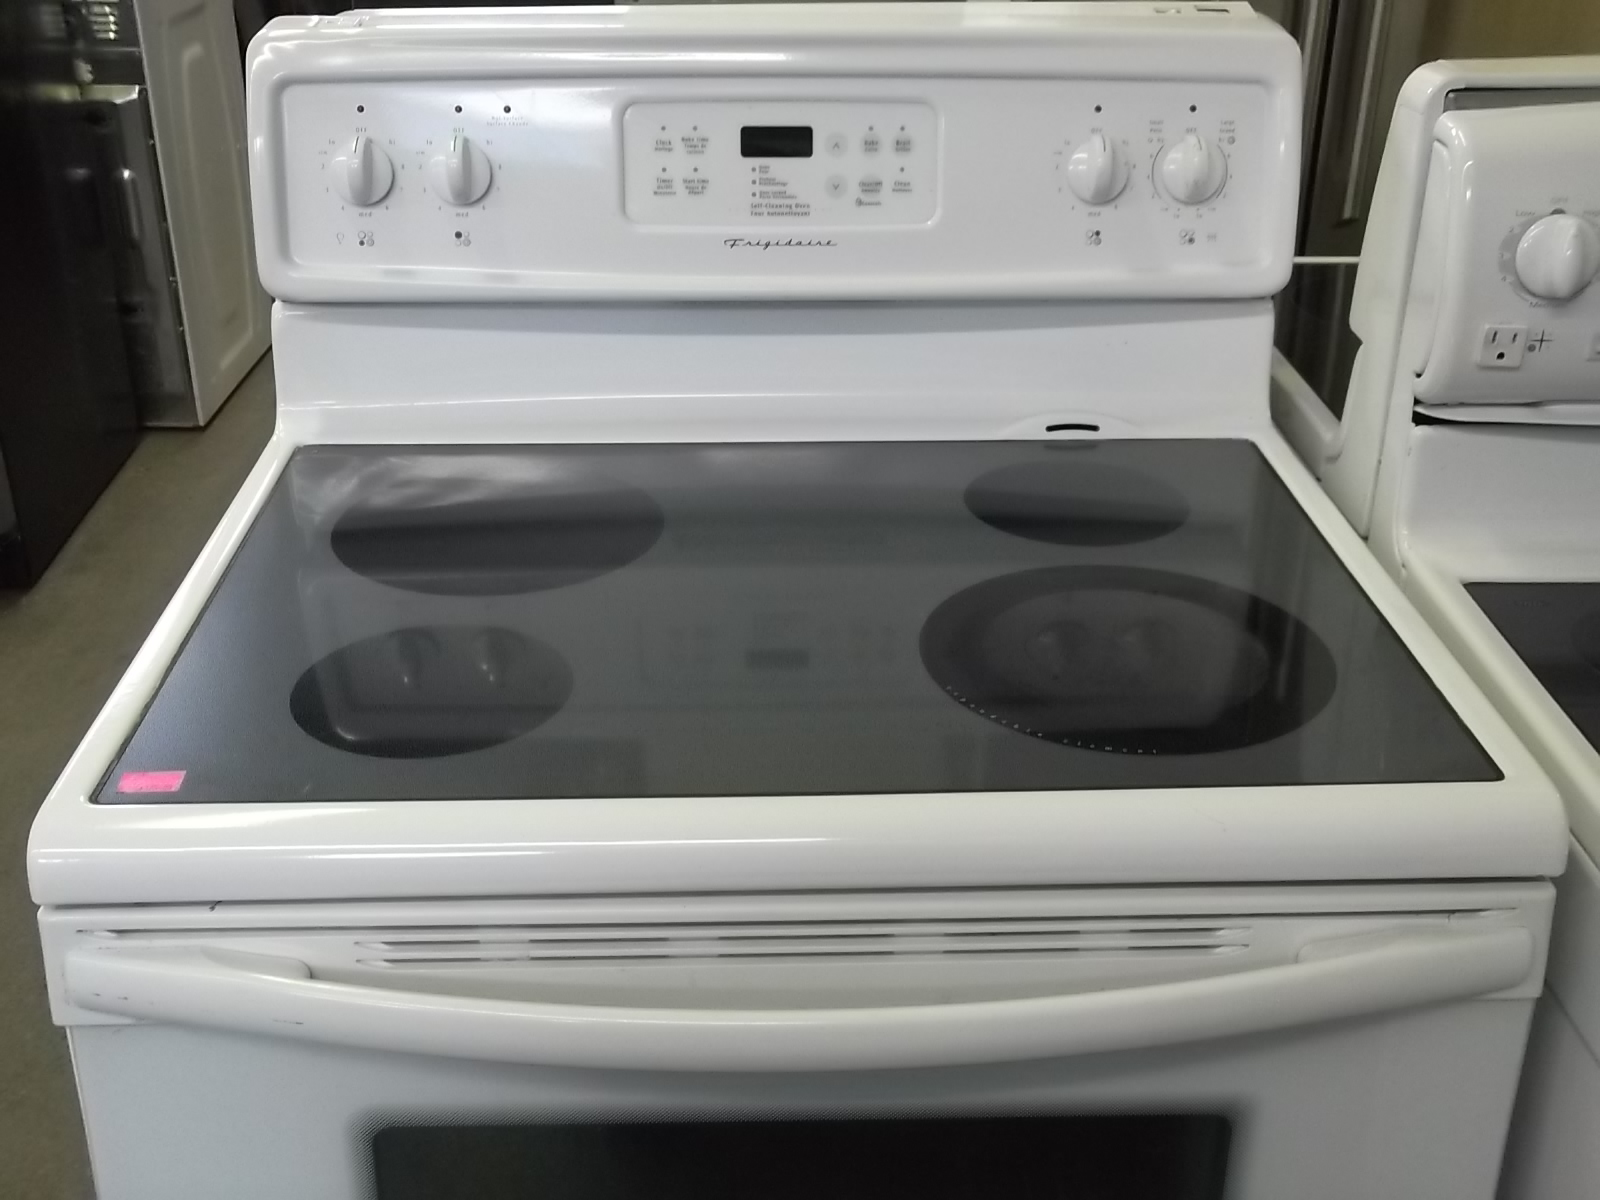 frigidaire 30 inch glass top stove the appliance warehouse new and used appliances. Black Bedroom Furniture Sets. Home Design Ideas